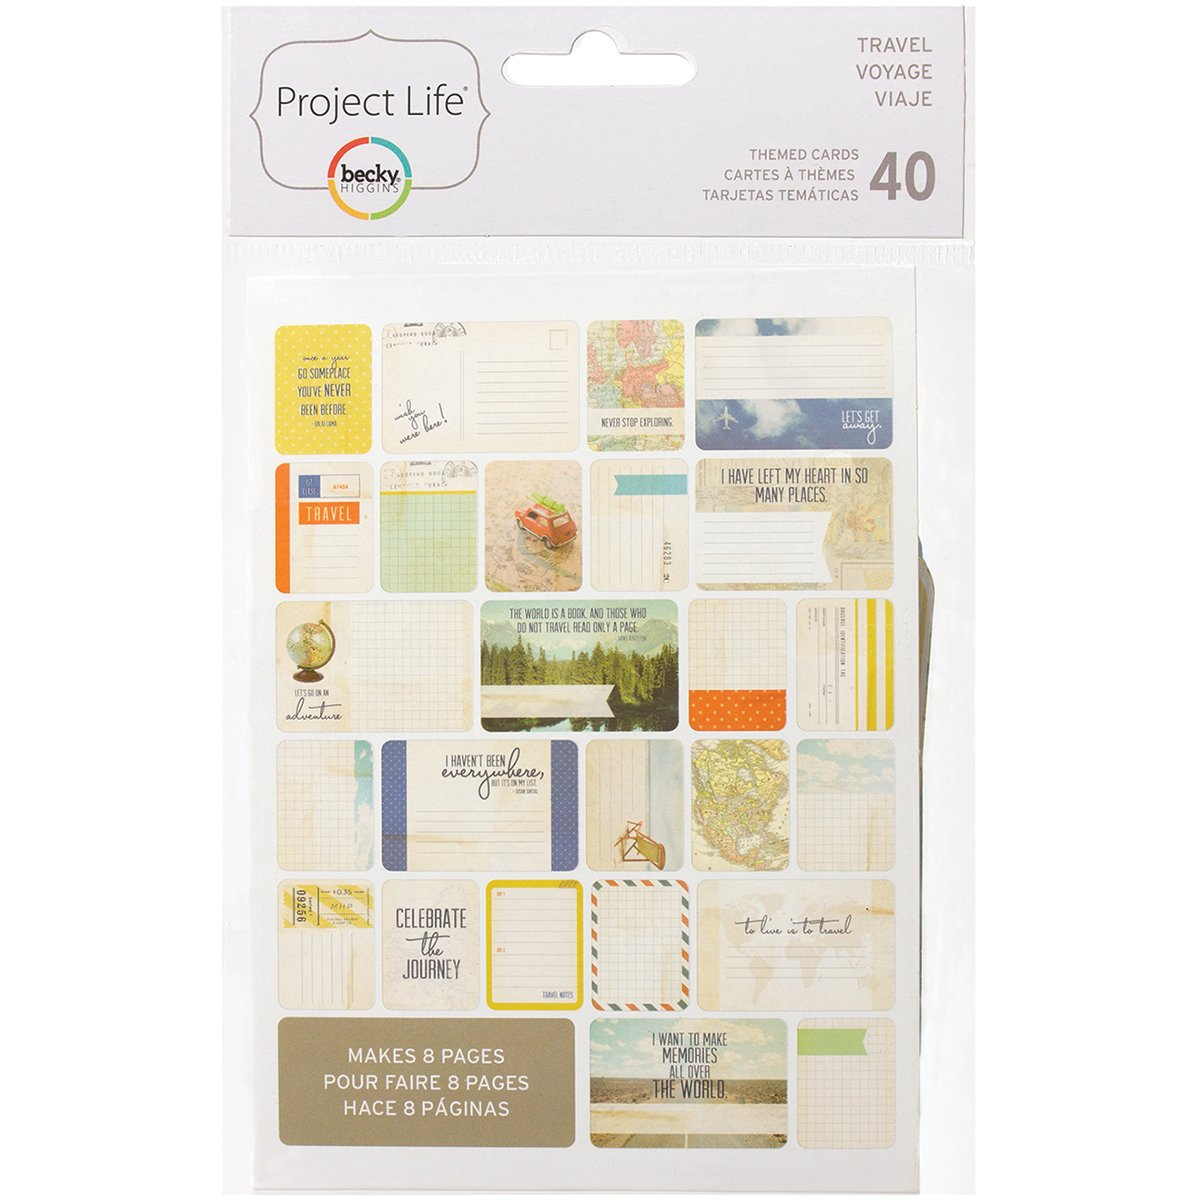 Project Life 718813977135 Themed Card, Travel unknown